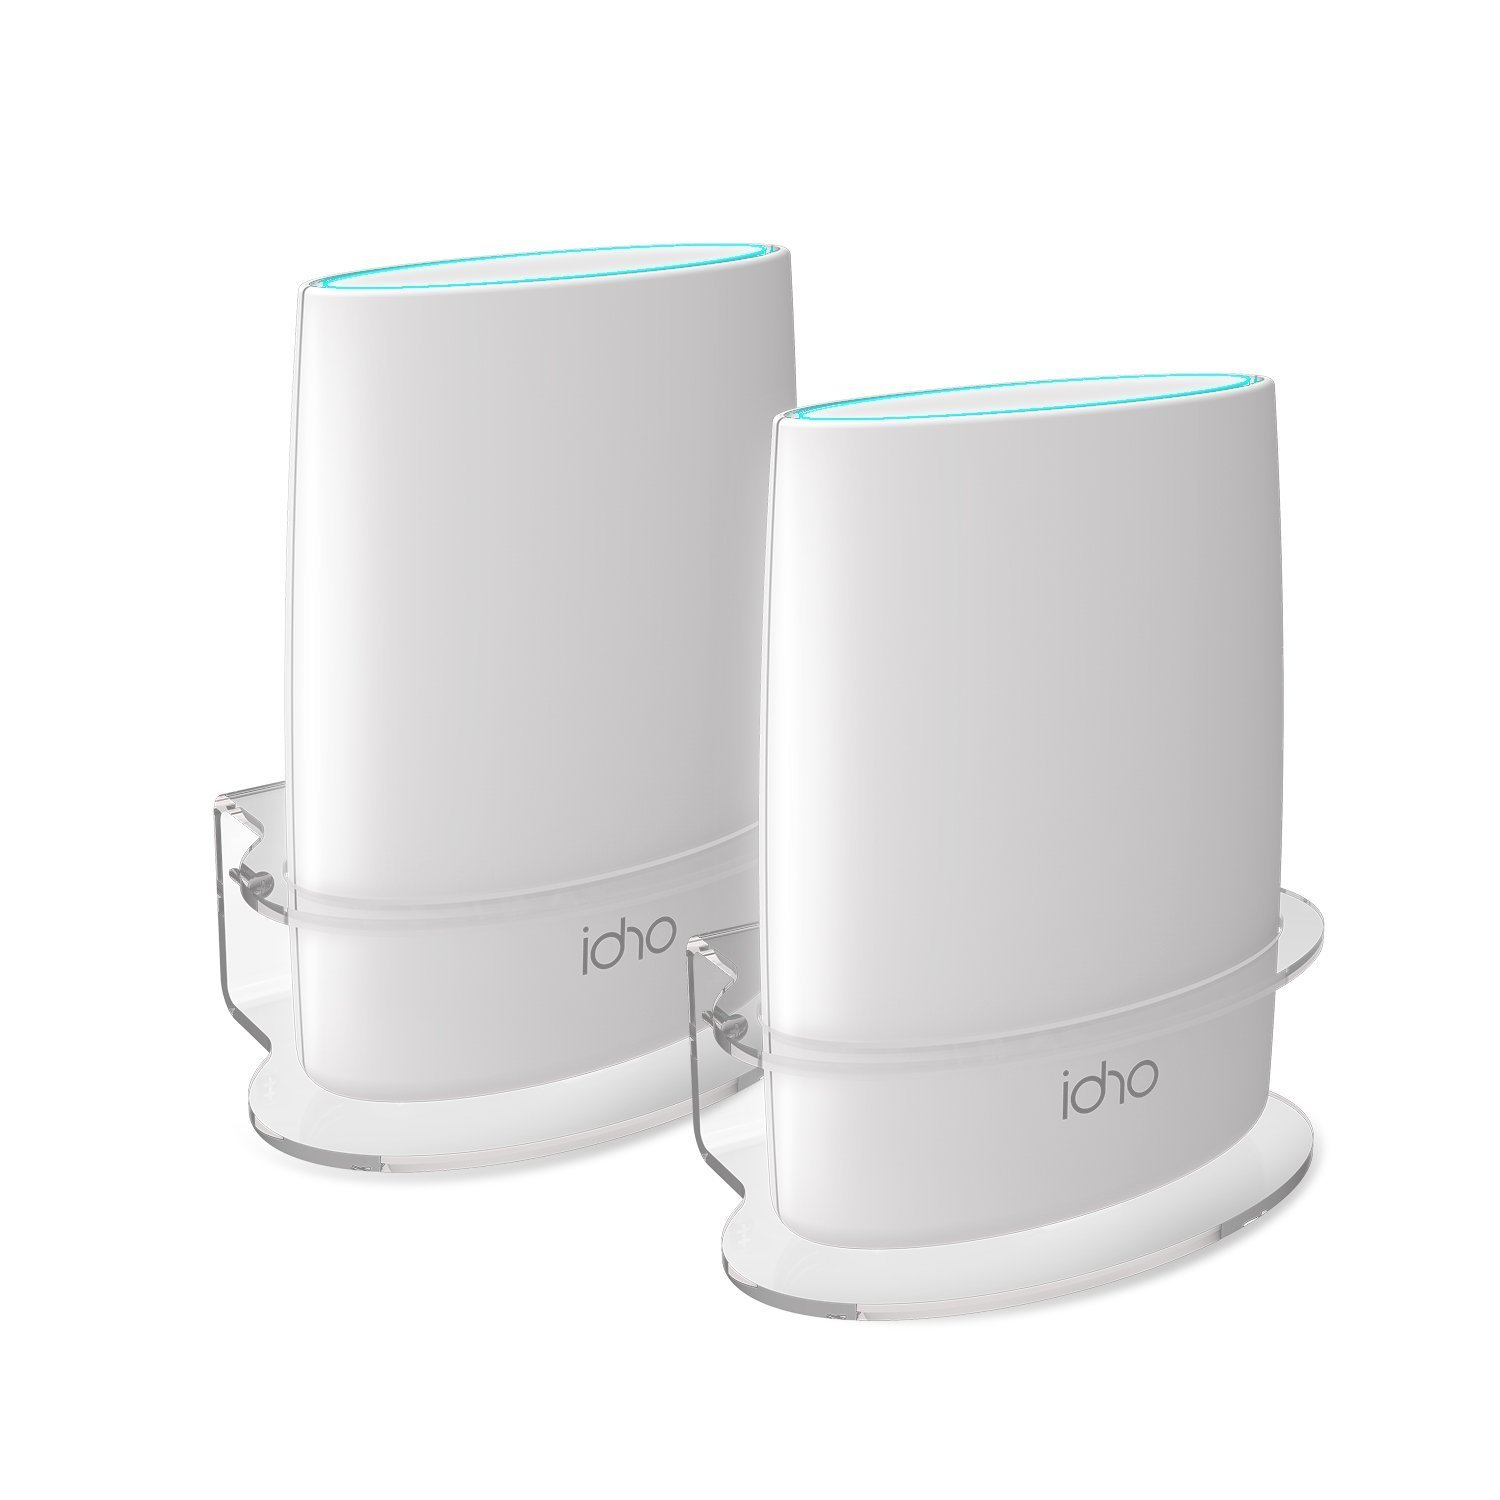 Netgear Orbi Wall Mount, BASSTOP Sturdy Clear Acrylic Wall Mount Bracket for NETGEAR ORBI AC3000/AC2200 Tri Band Home WiFi Router- (2 Packs)